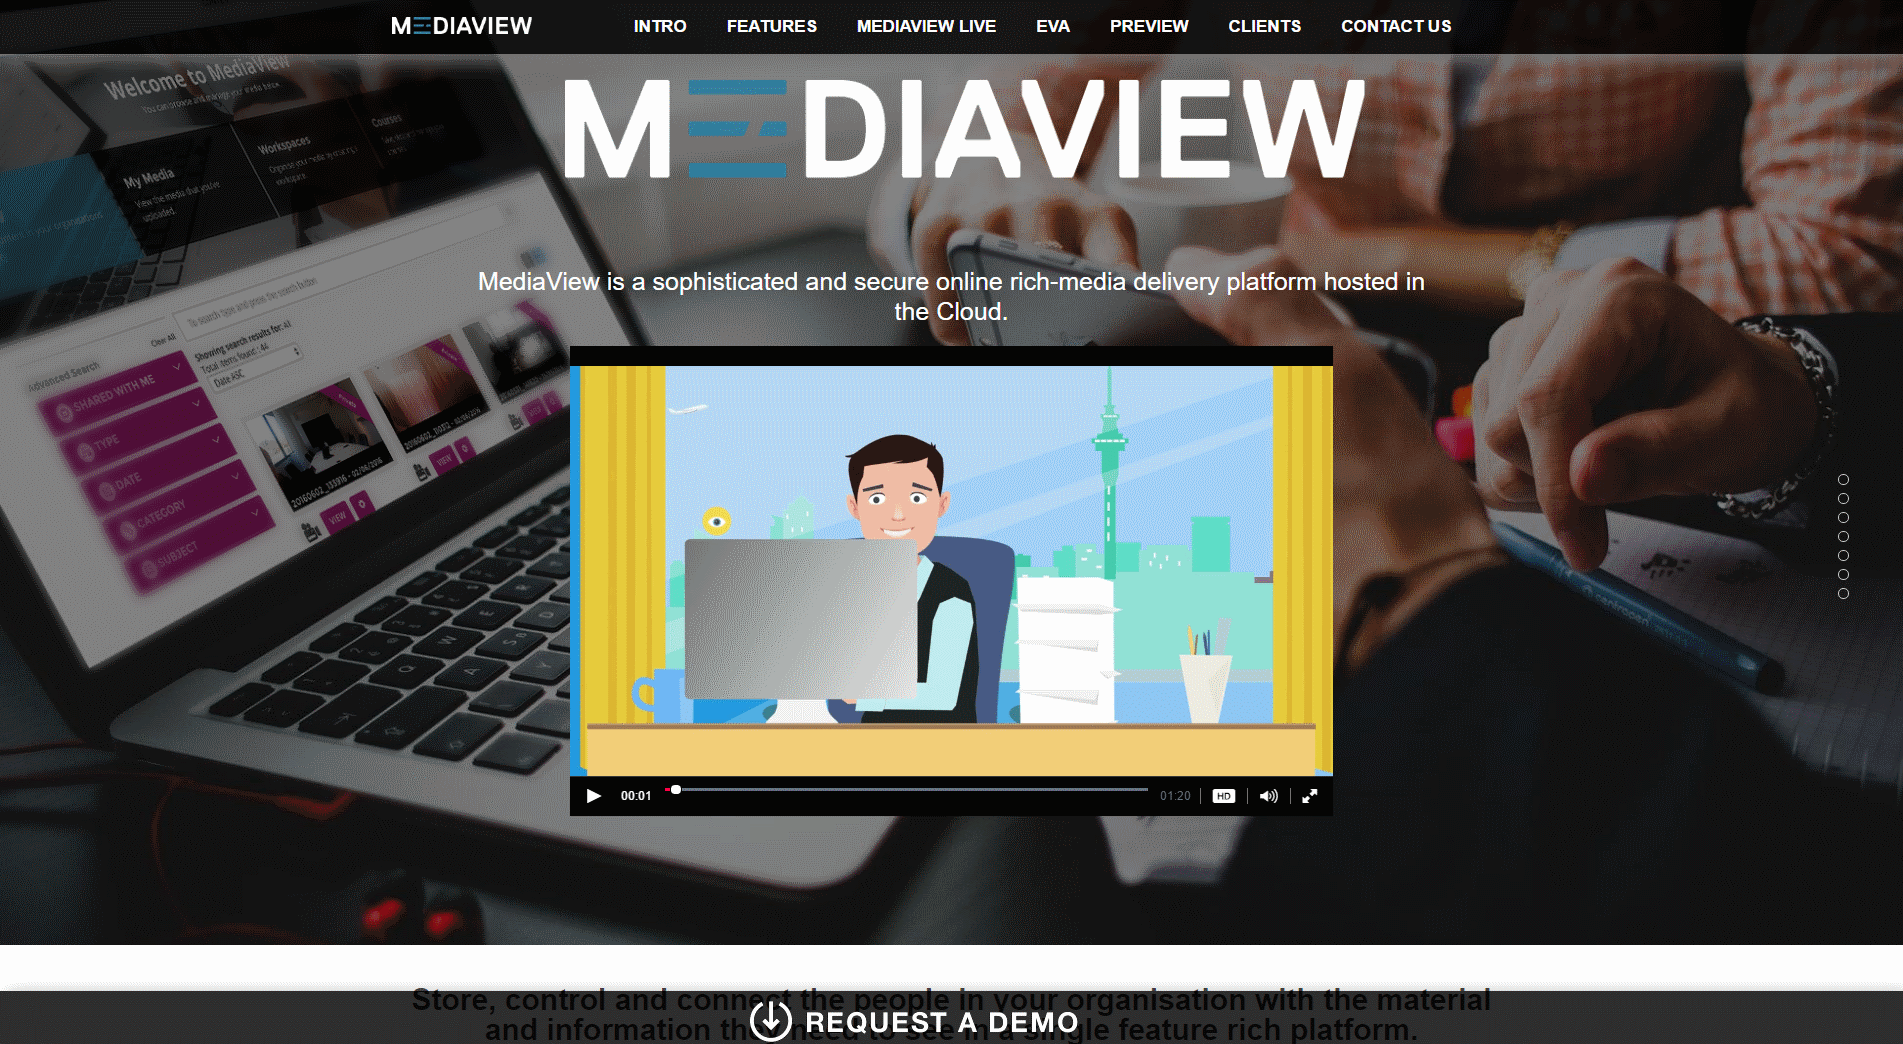 Our client MediaView.co.nz website